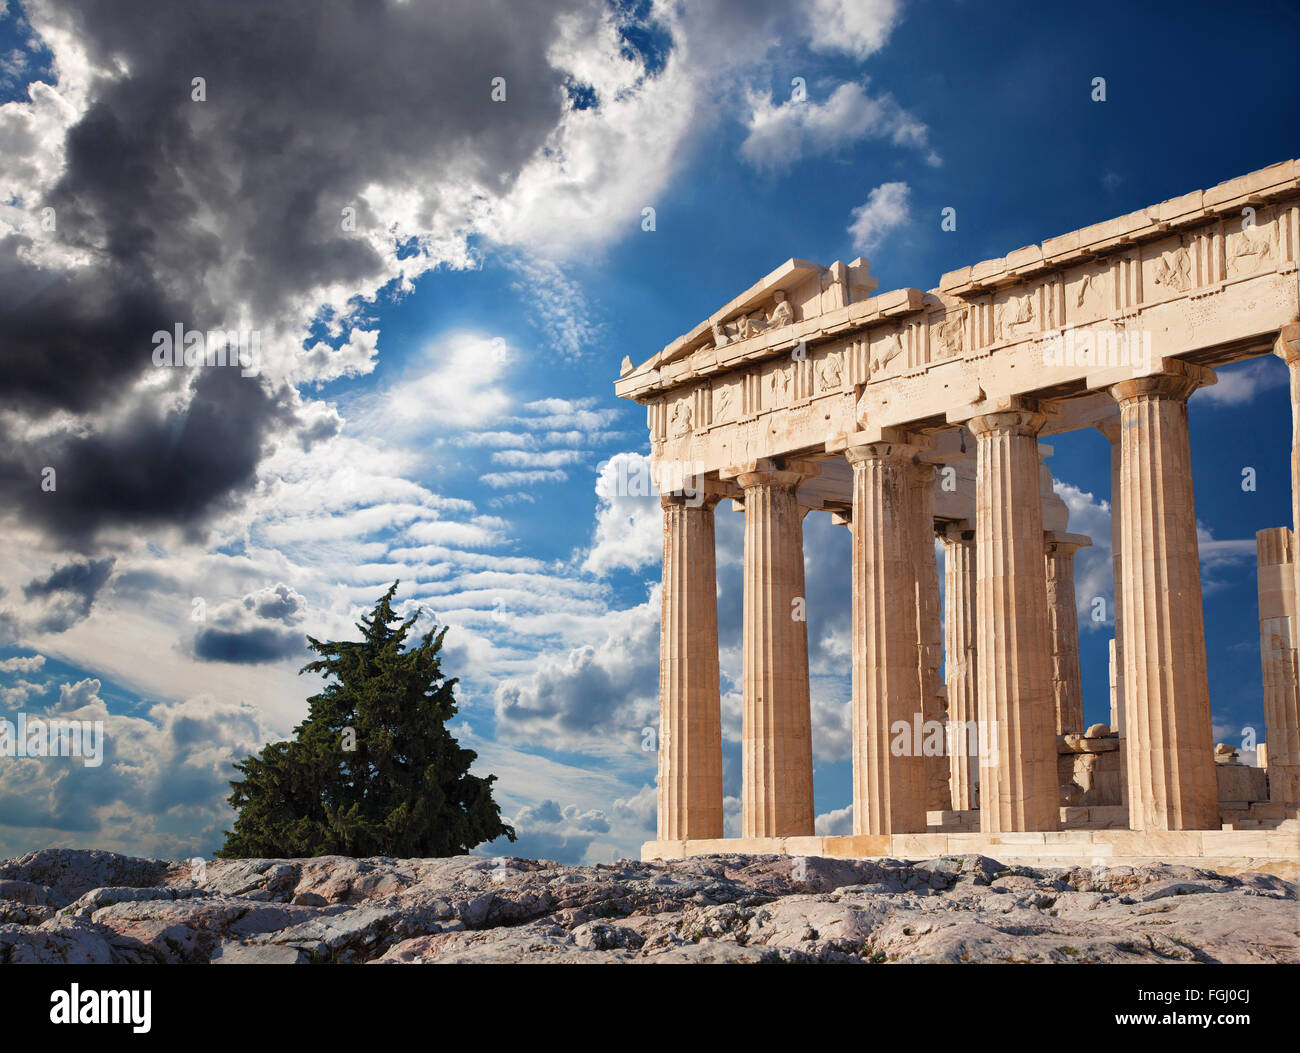 Athens - The Acropolis and beautiful cloudscape - Stock Image